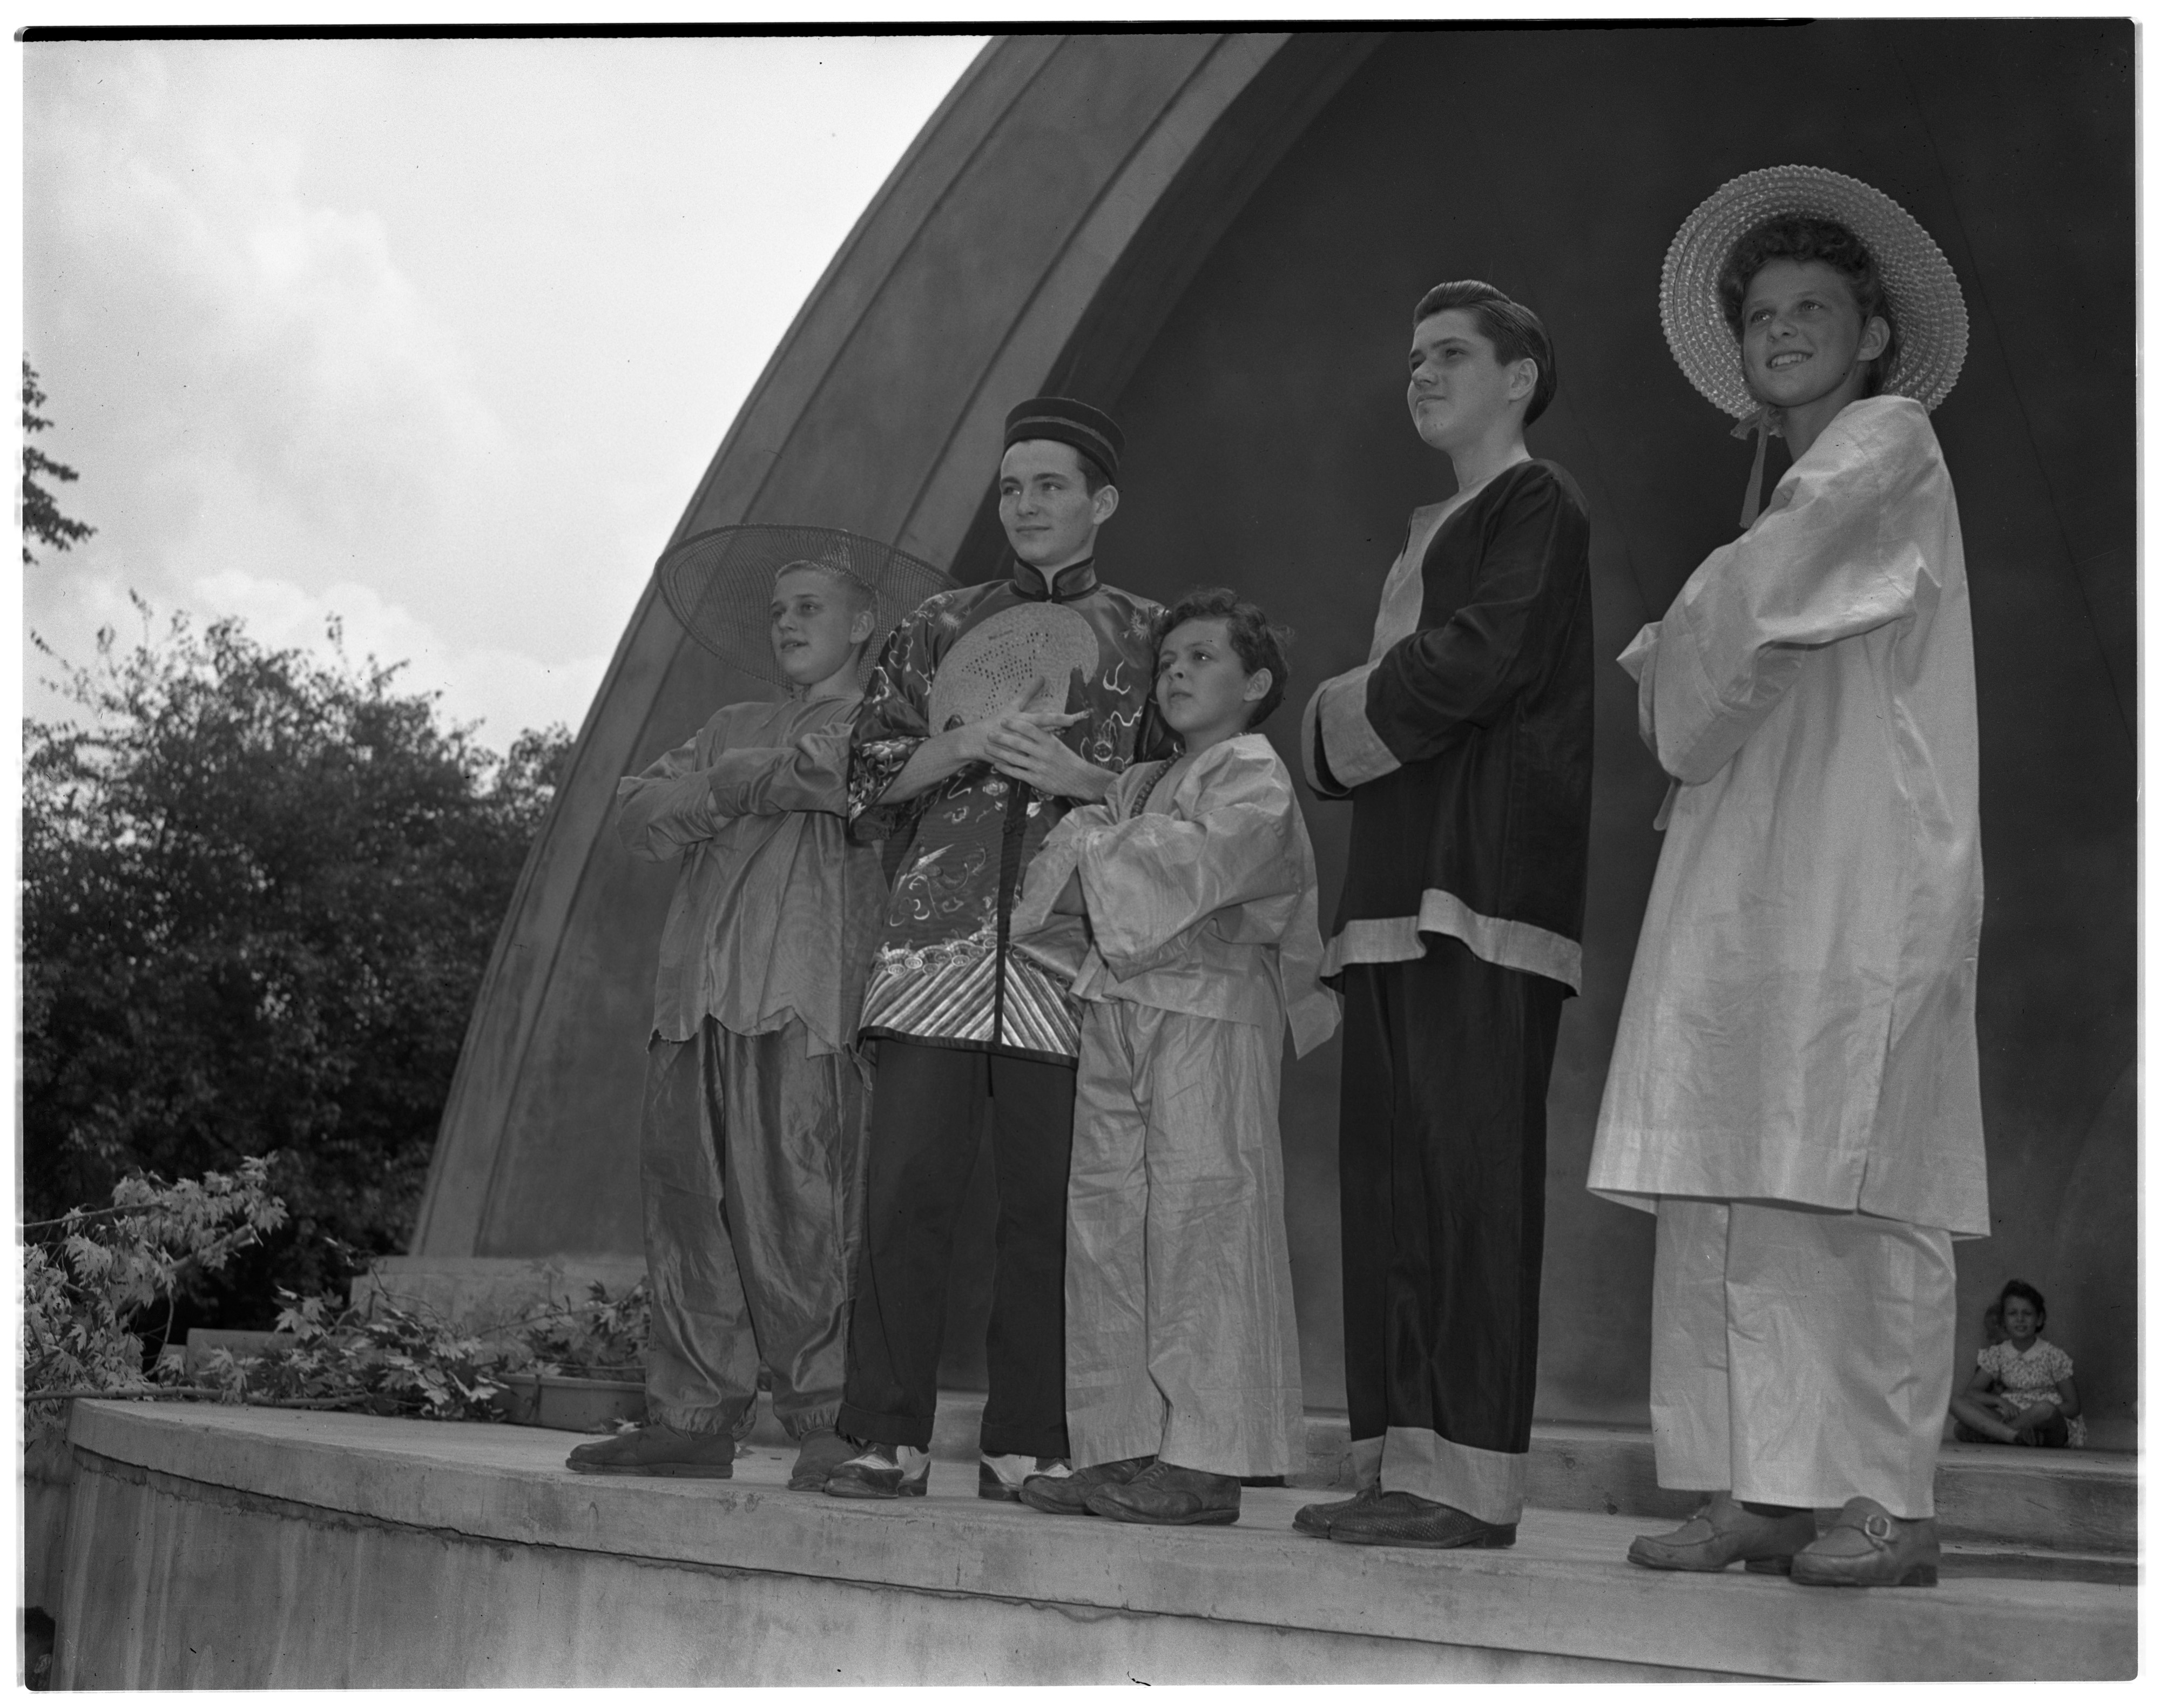 Performers at the West Park Band Shell, July, 1942 image